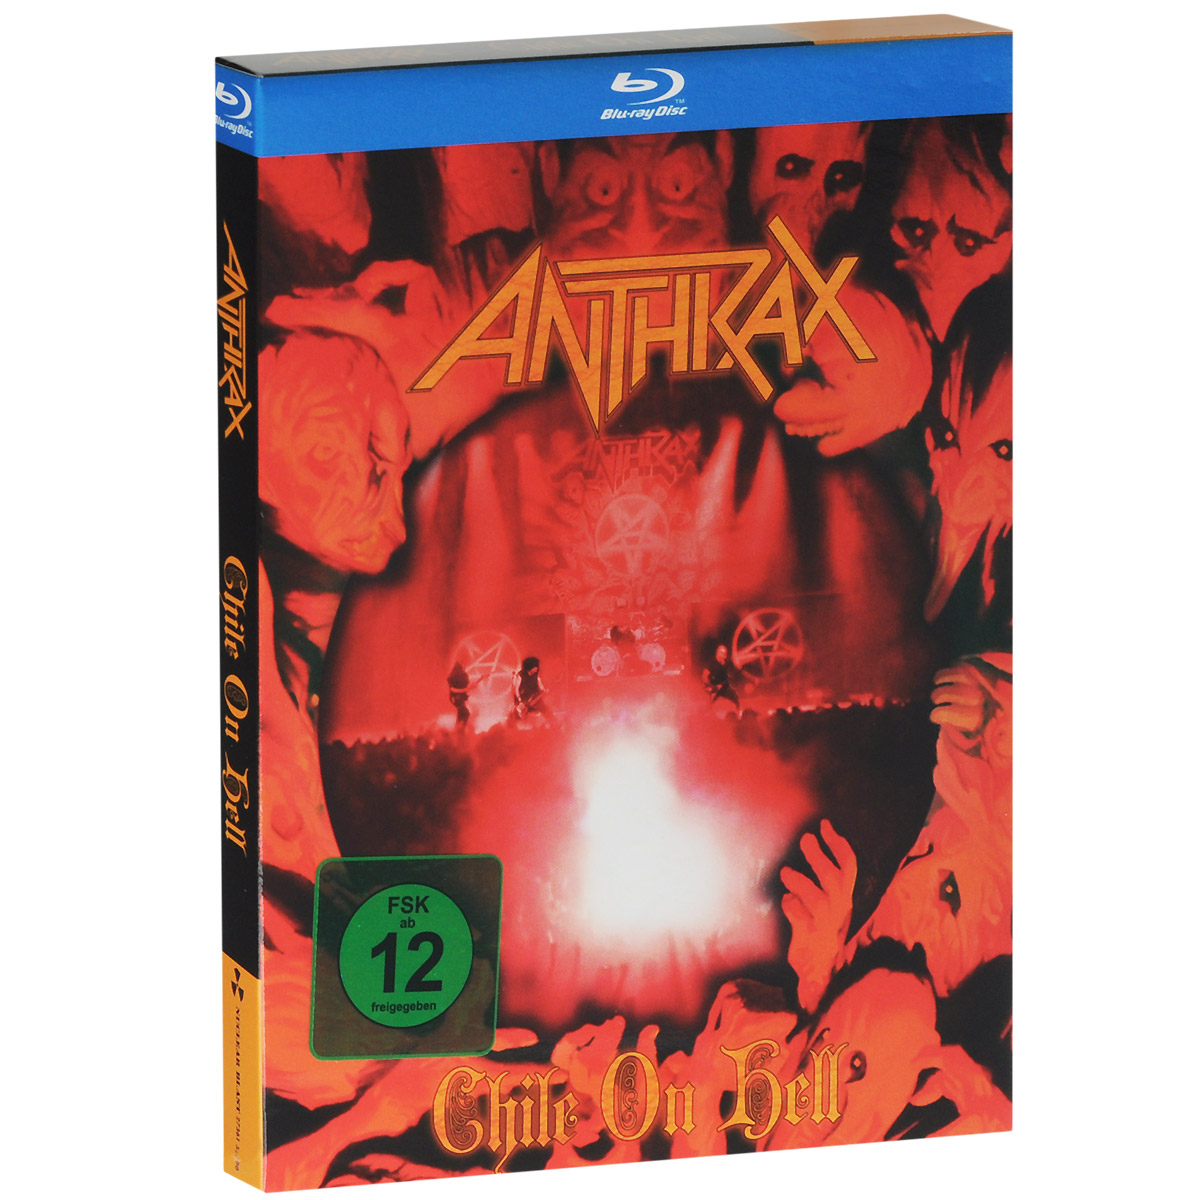 Anthrax. Chile on hell (Blu-ray + 2 CD) celine dion through the eyes of the world blu ray